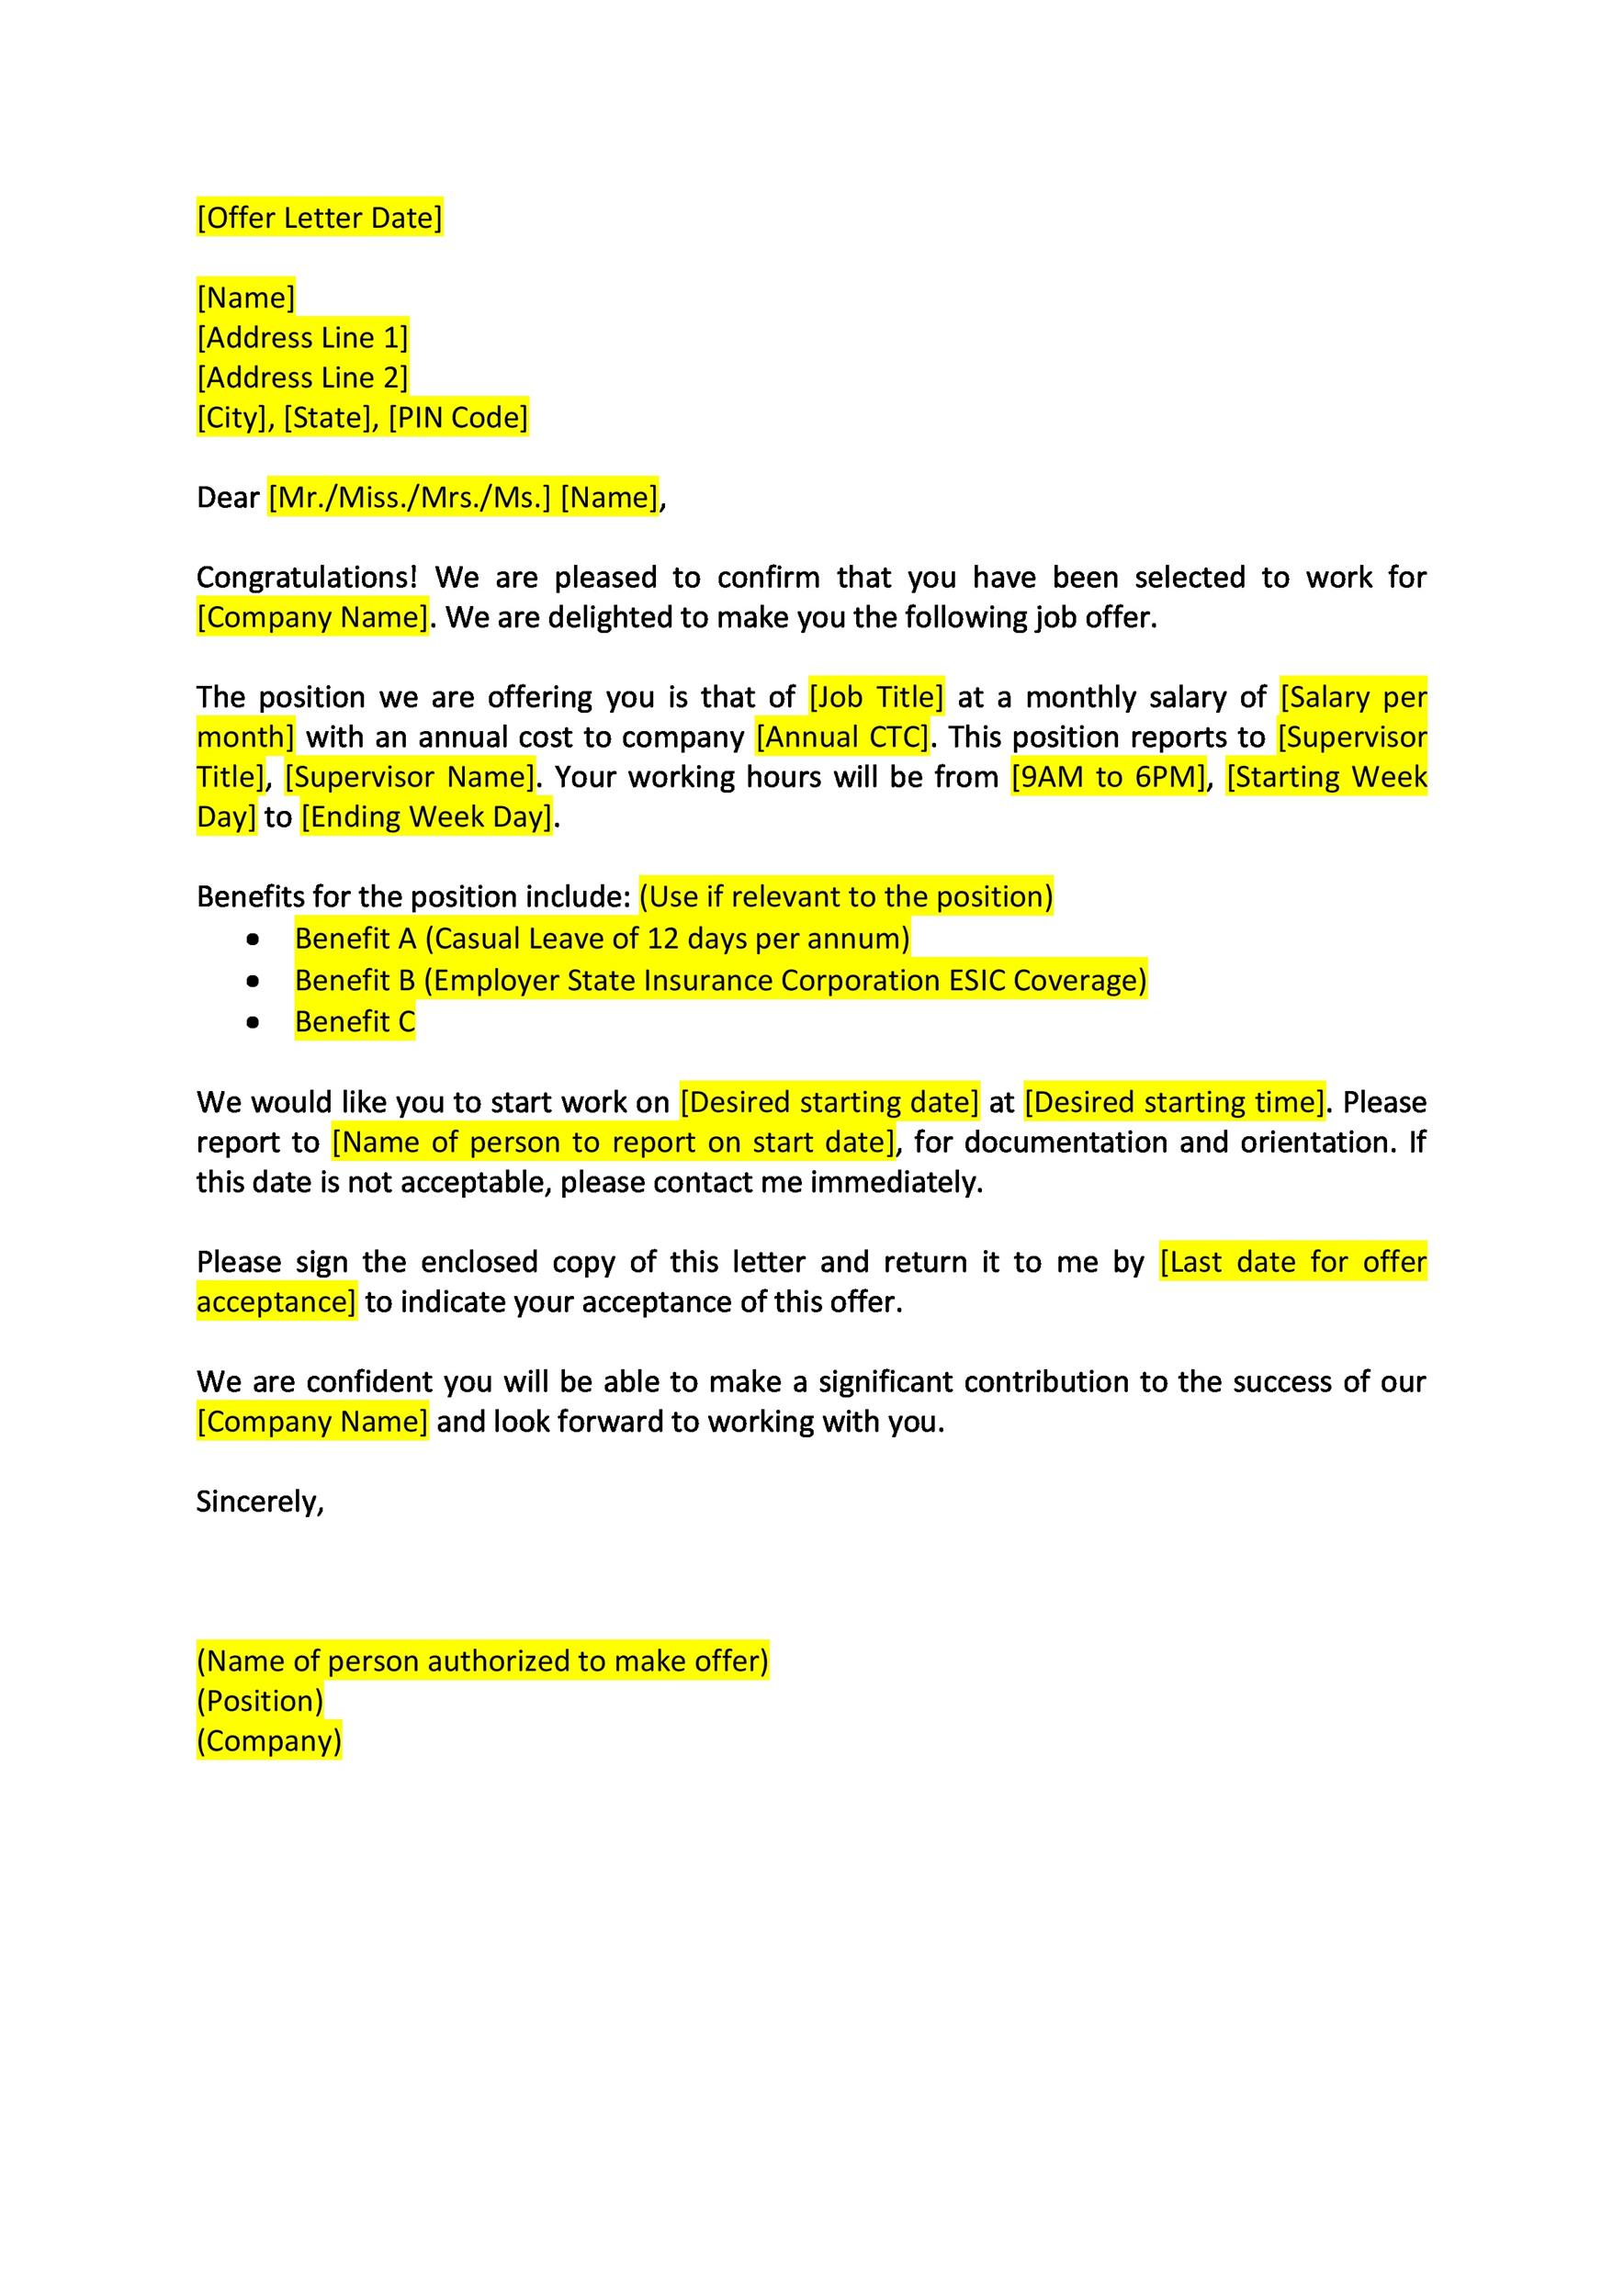 44 Fantastic Offer Letter Templates [Employment / Counter Offer / Job]